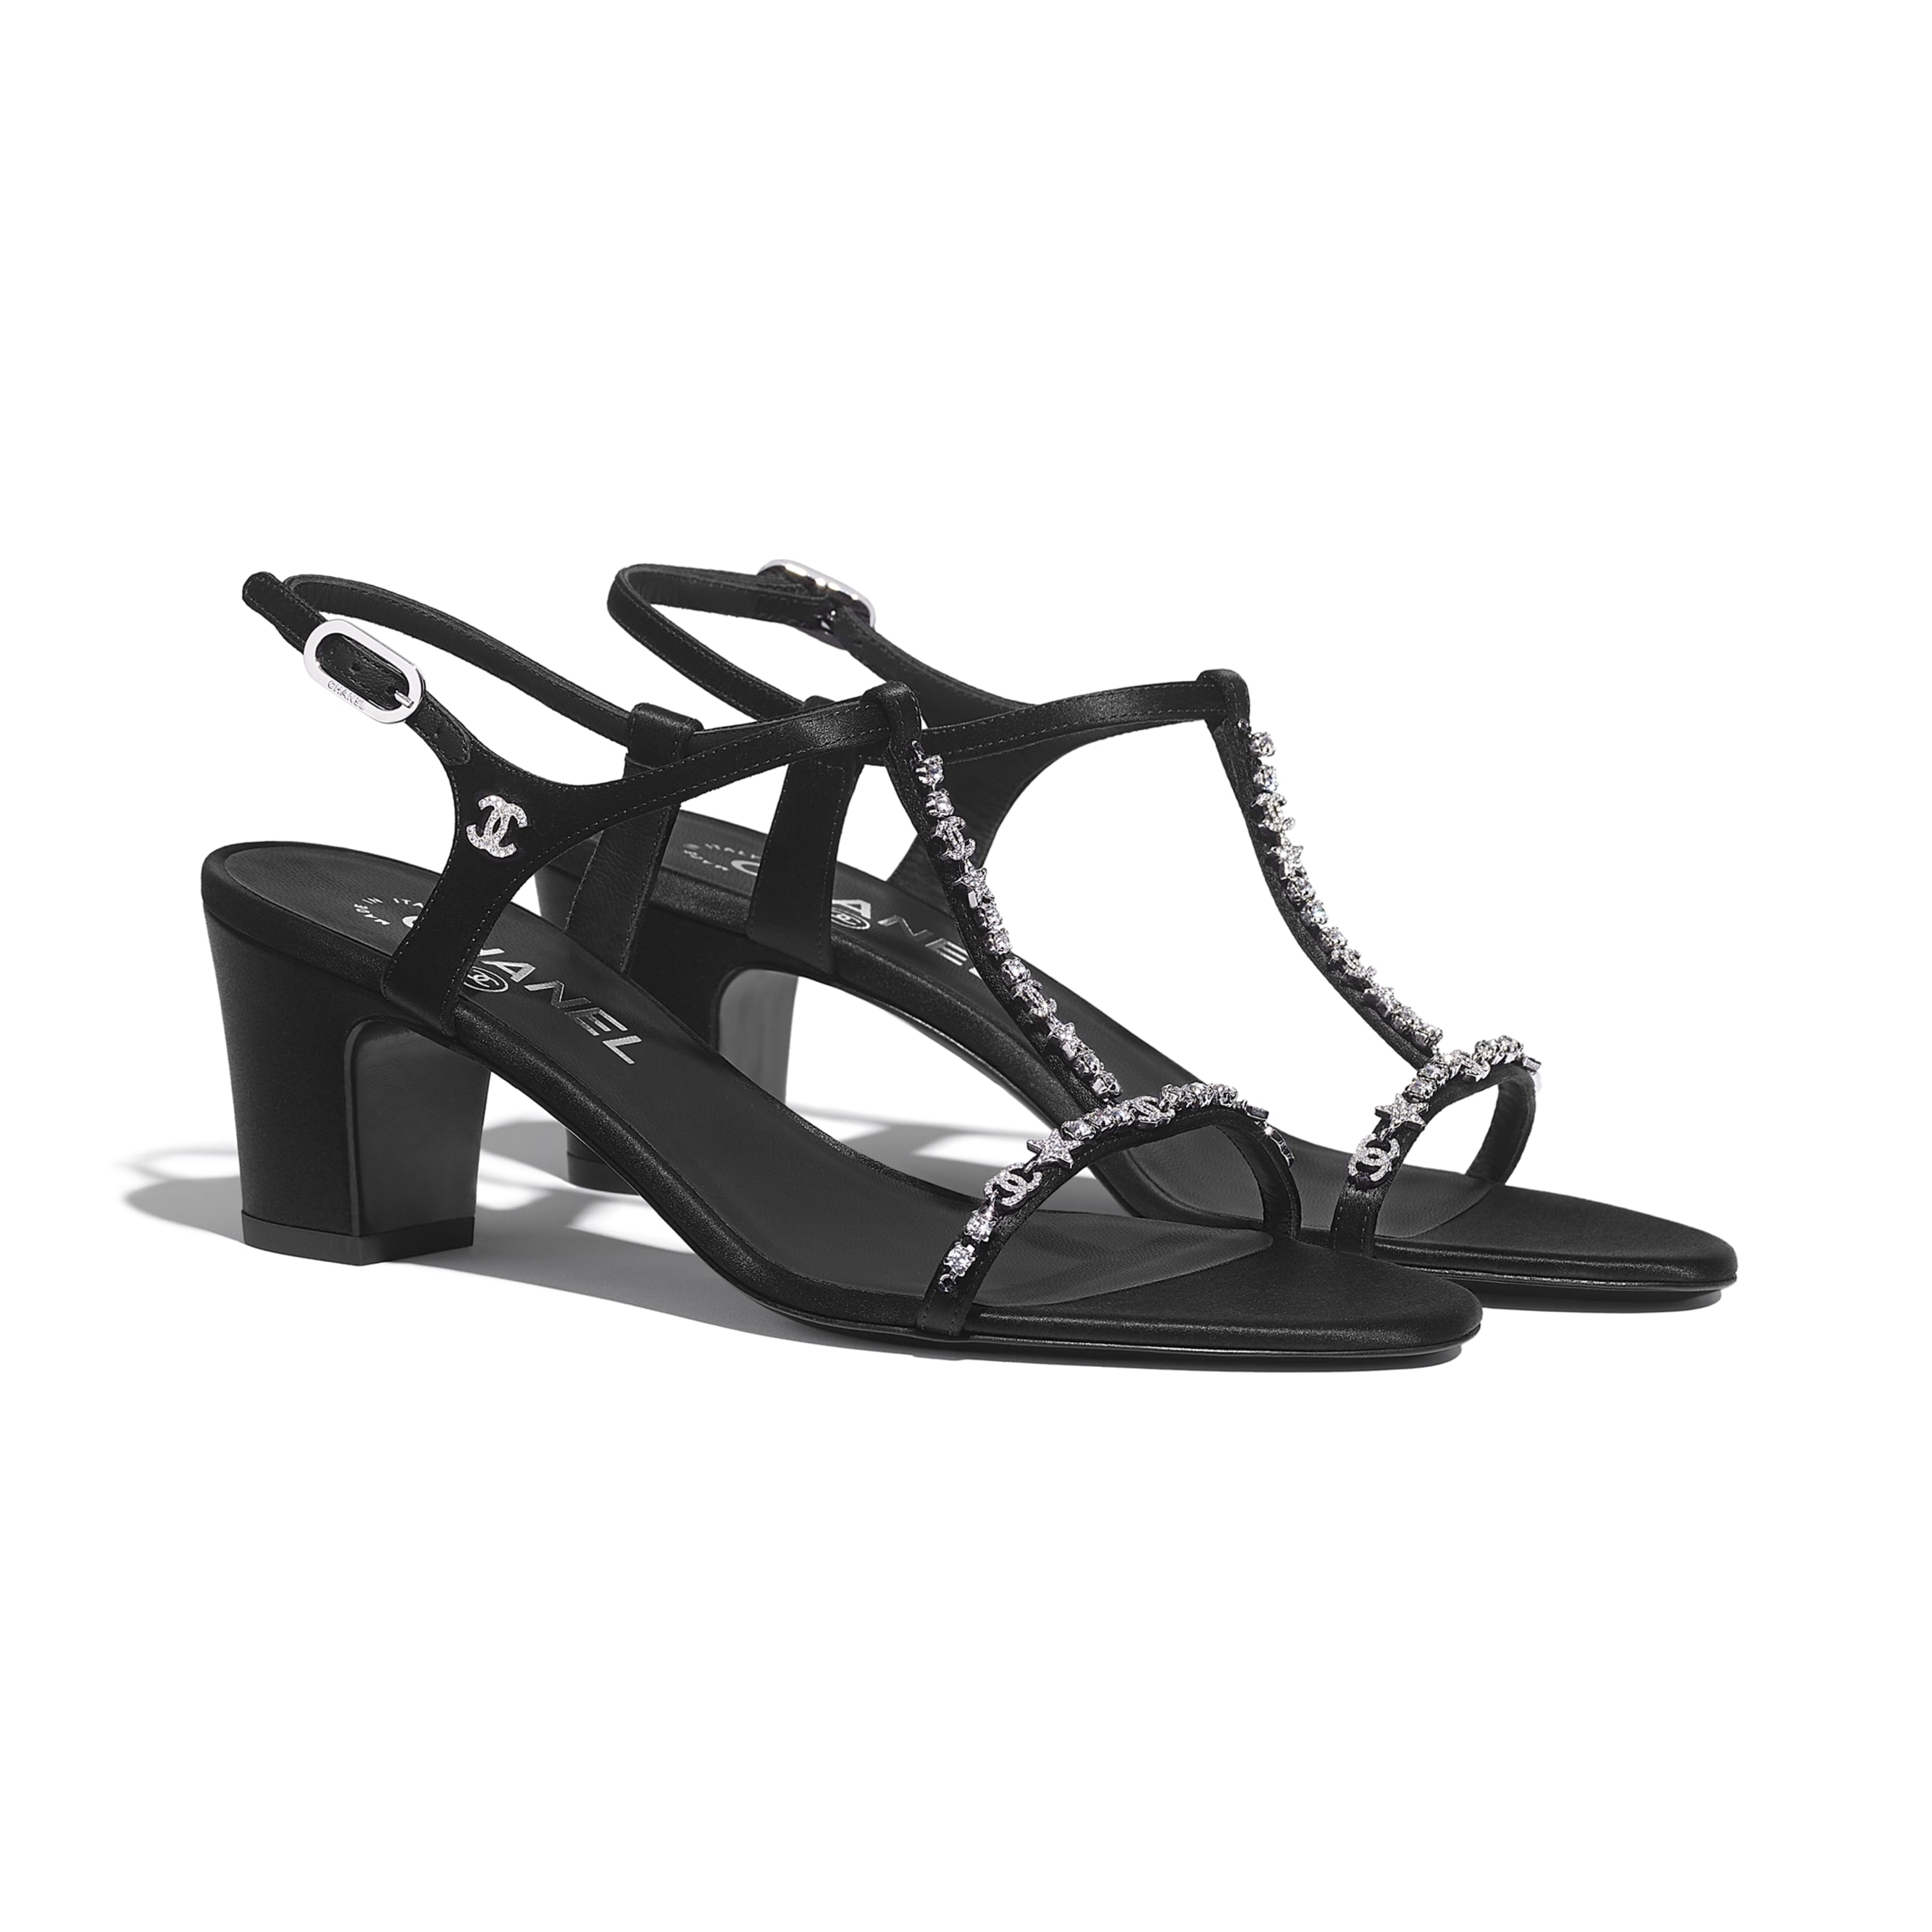 Sandals - Black - Satin & Diamanté - Alternative view - see standard sized version